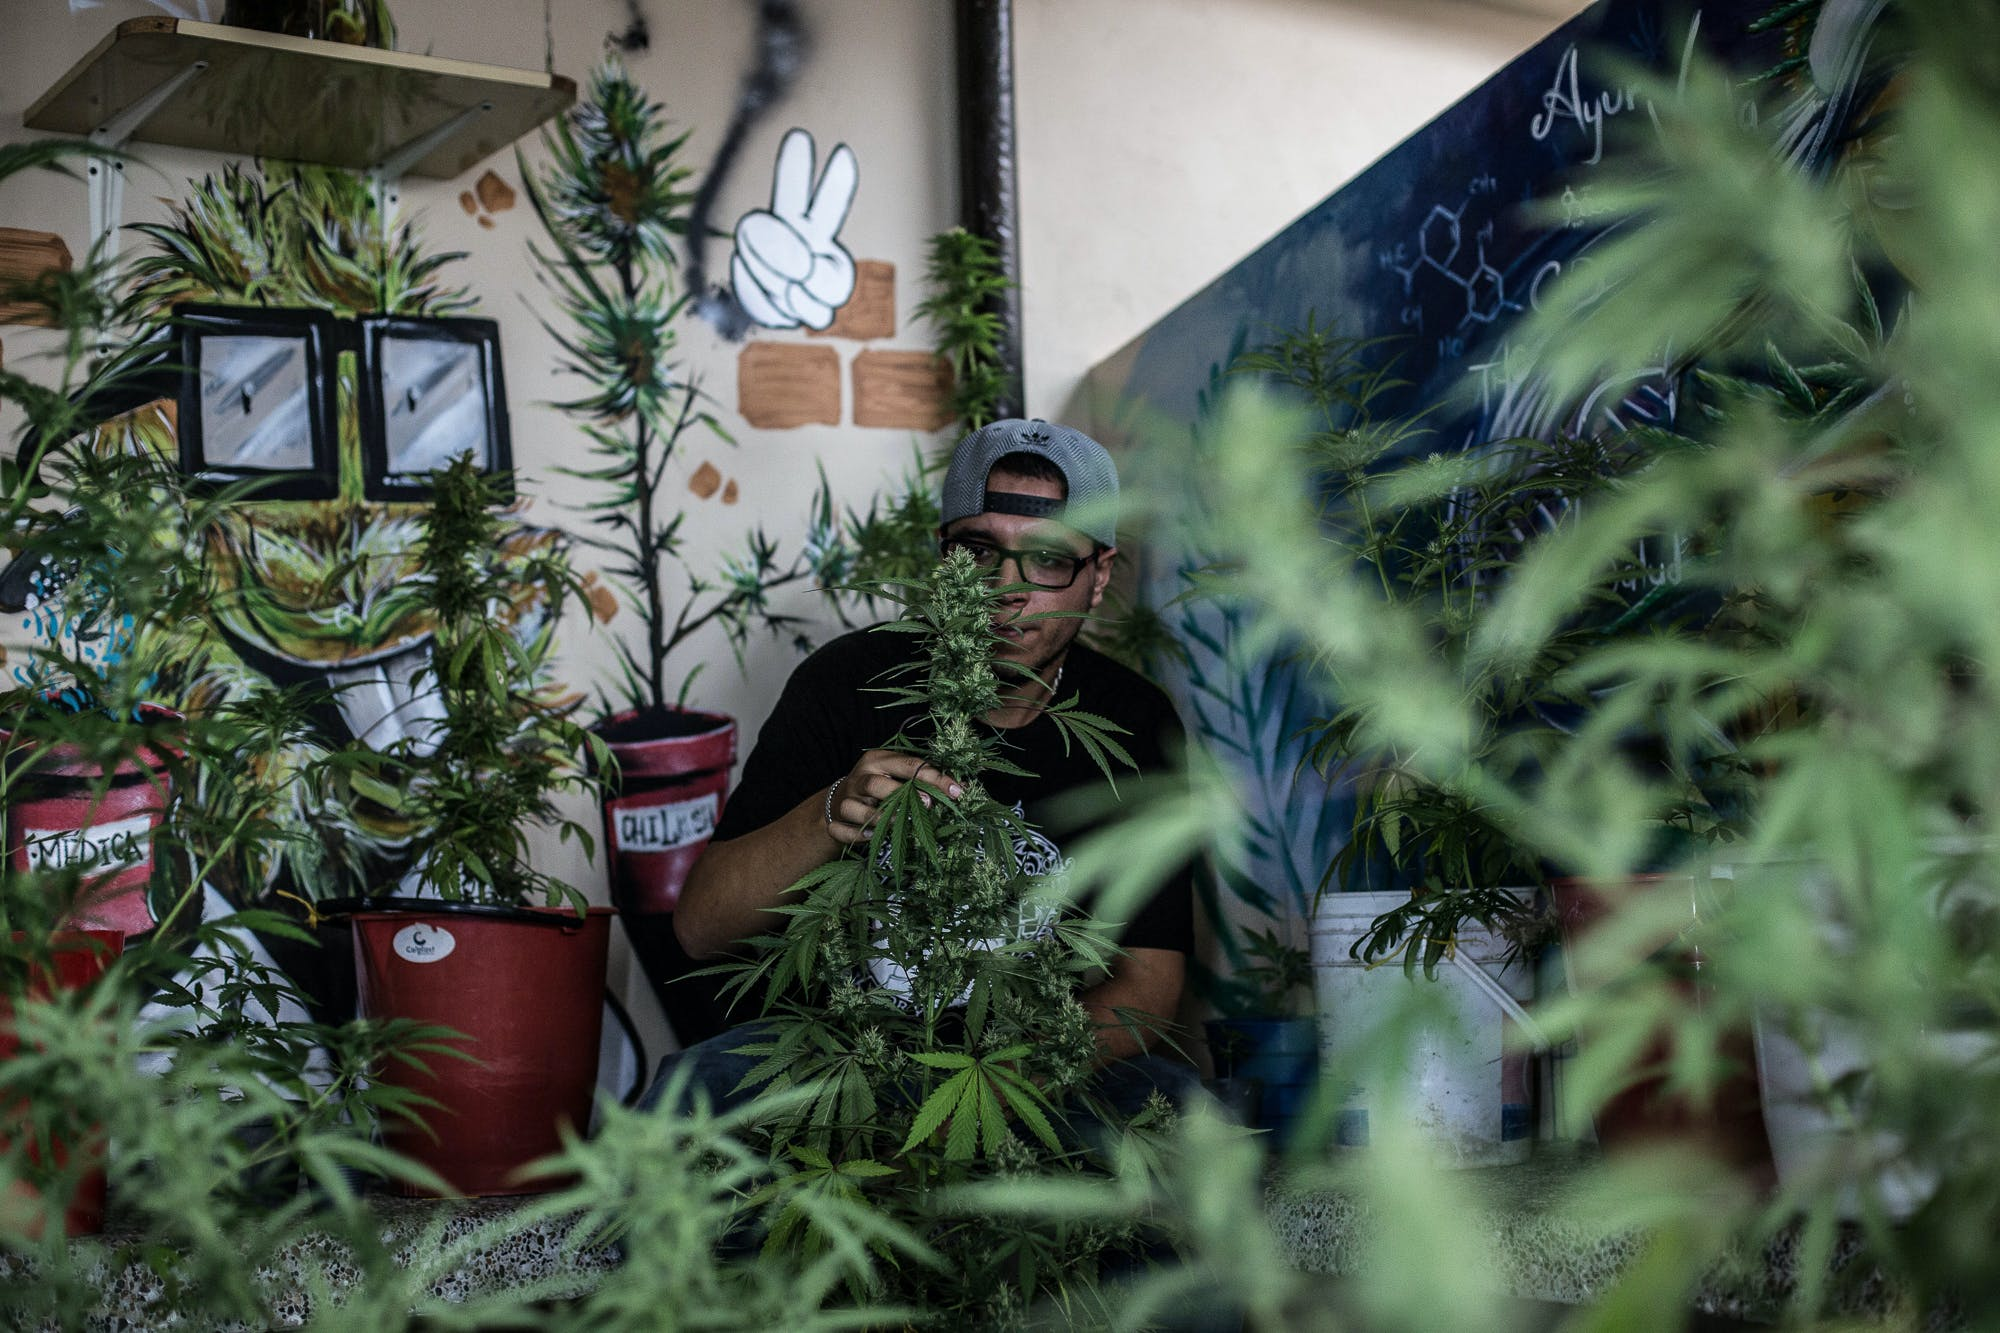 Marijuana Grows Medelli%CC%81n Colombia Photo Essay 1 Cannabis is Legal in Vermont, But Gifting it Isnt